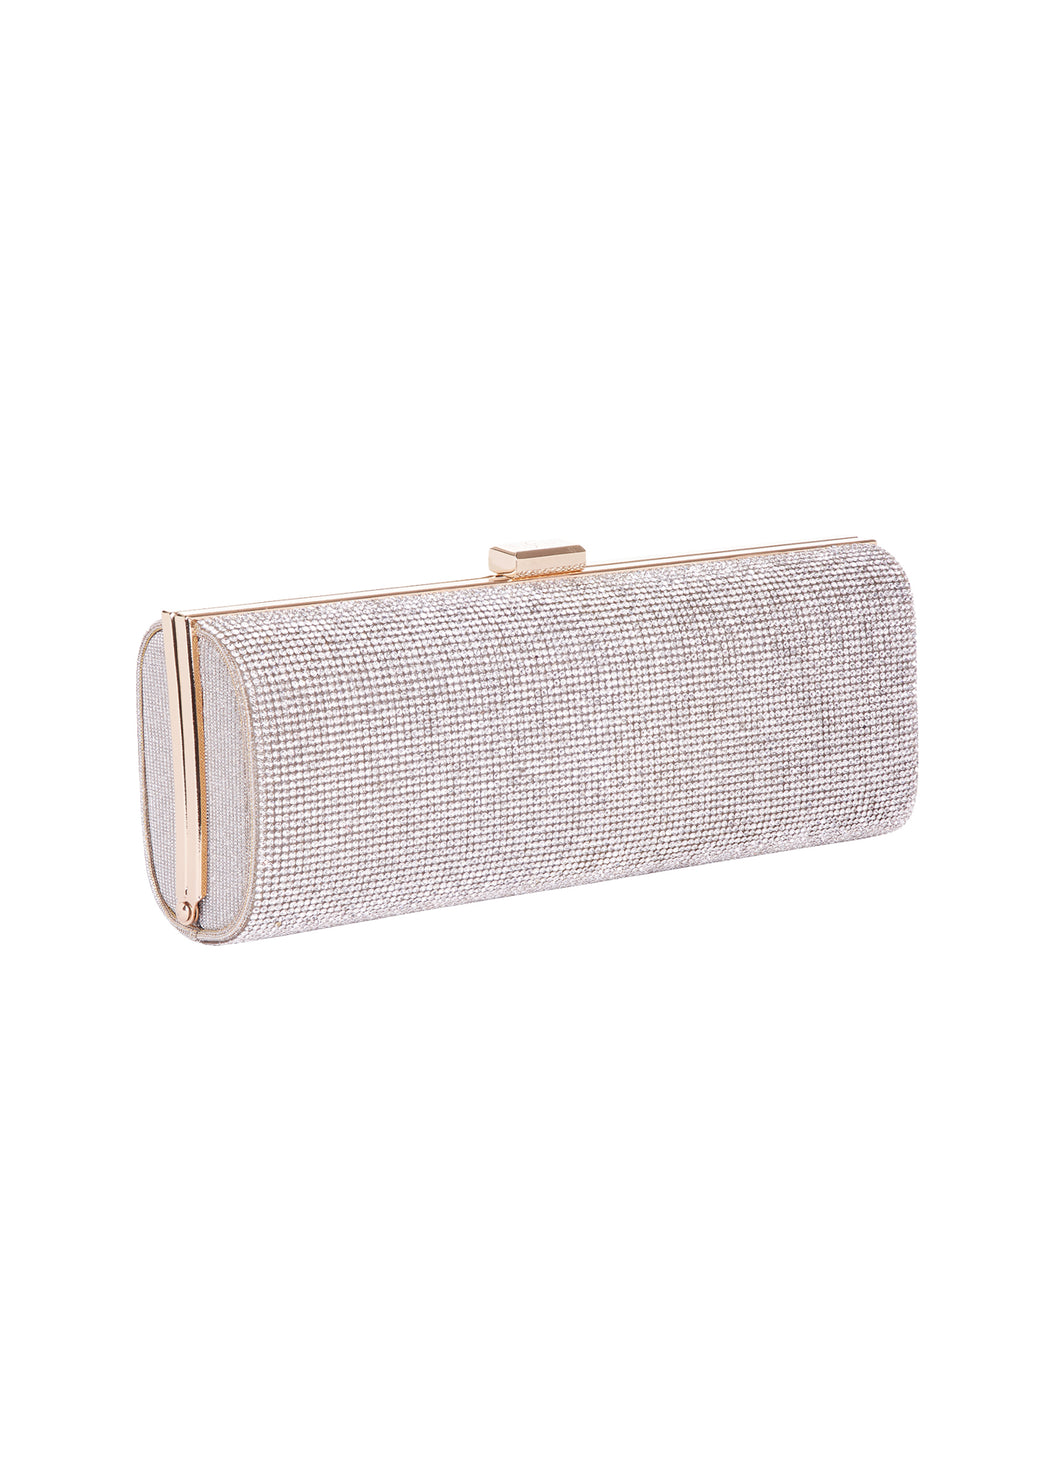 Baby Disco Clutch Bag